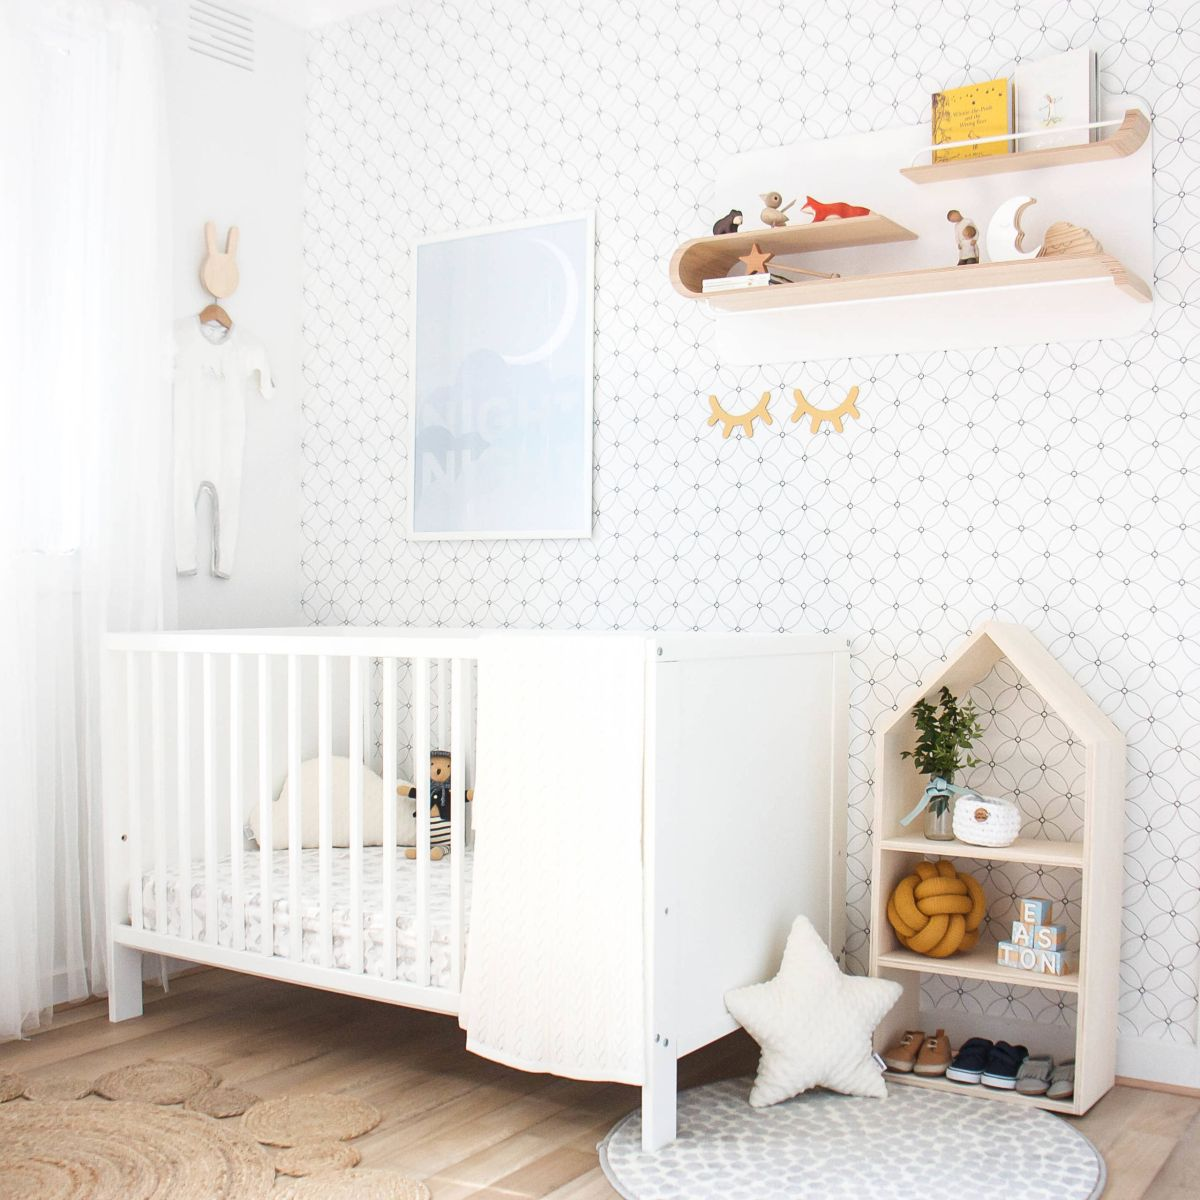 Scandinavian nursery wallpaper